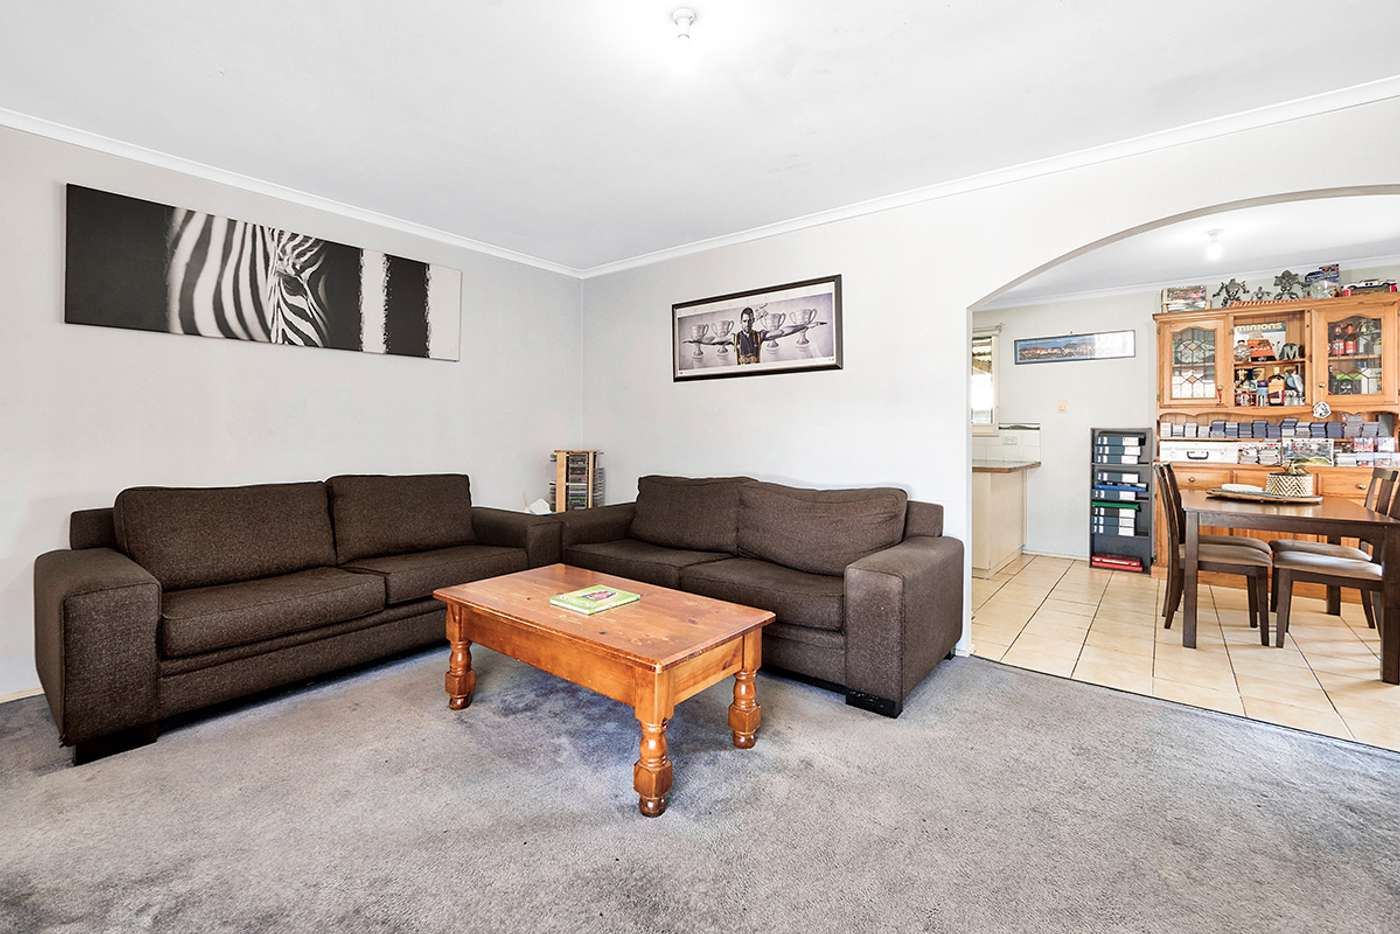 Sixth view of Homely house listing, 33 Fenfield Street, Cranbourne VIC 3977